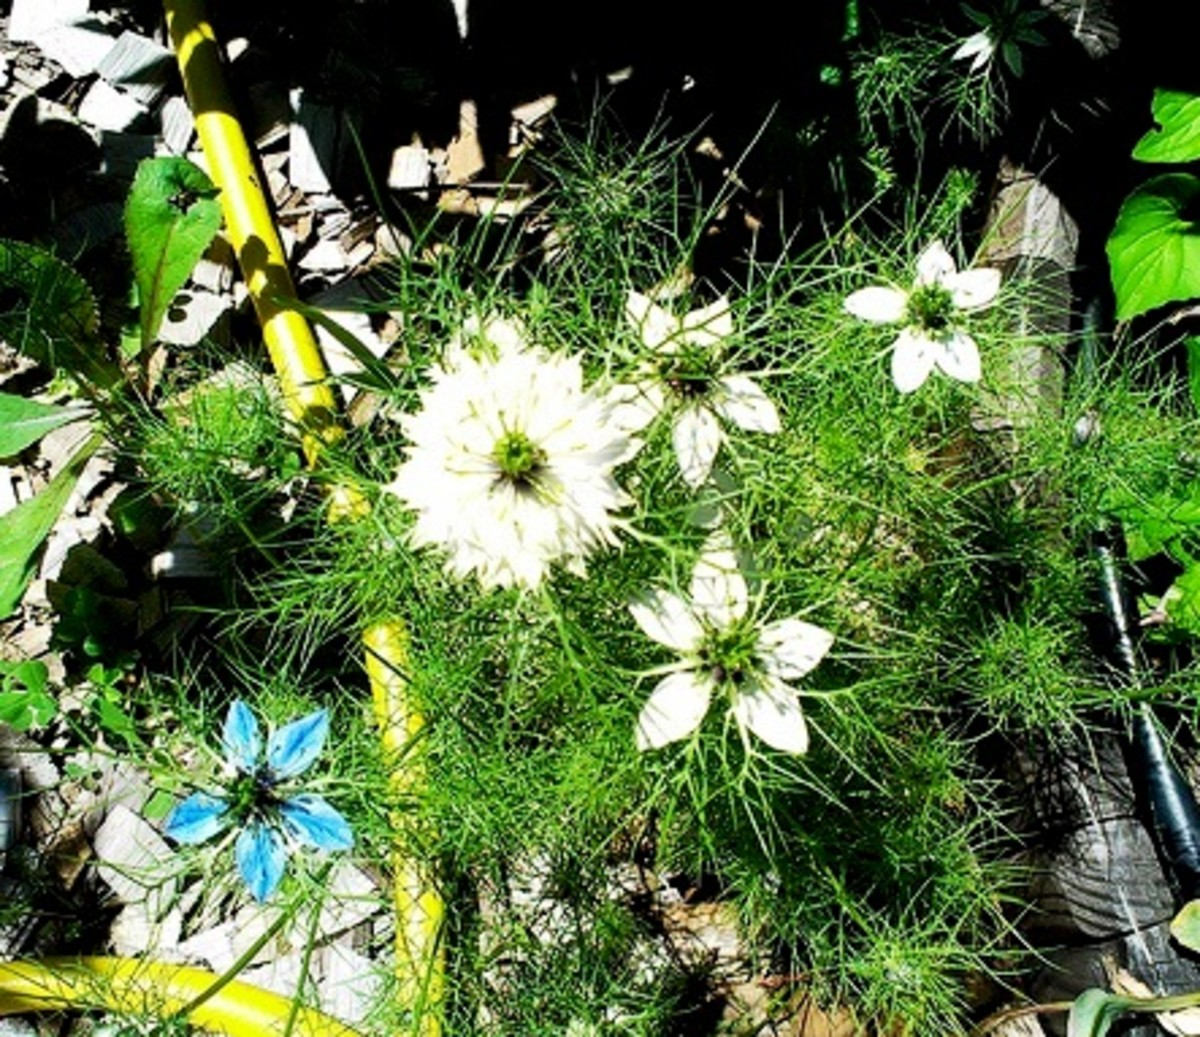 Love-in-a-Mist blooms in a white/blue mix.